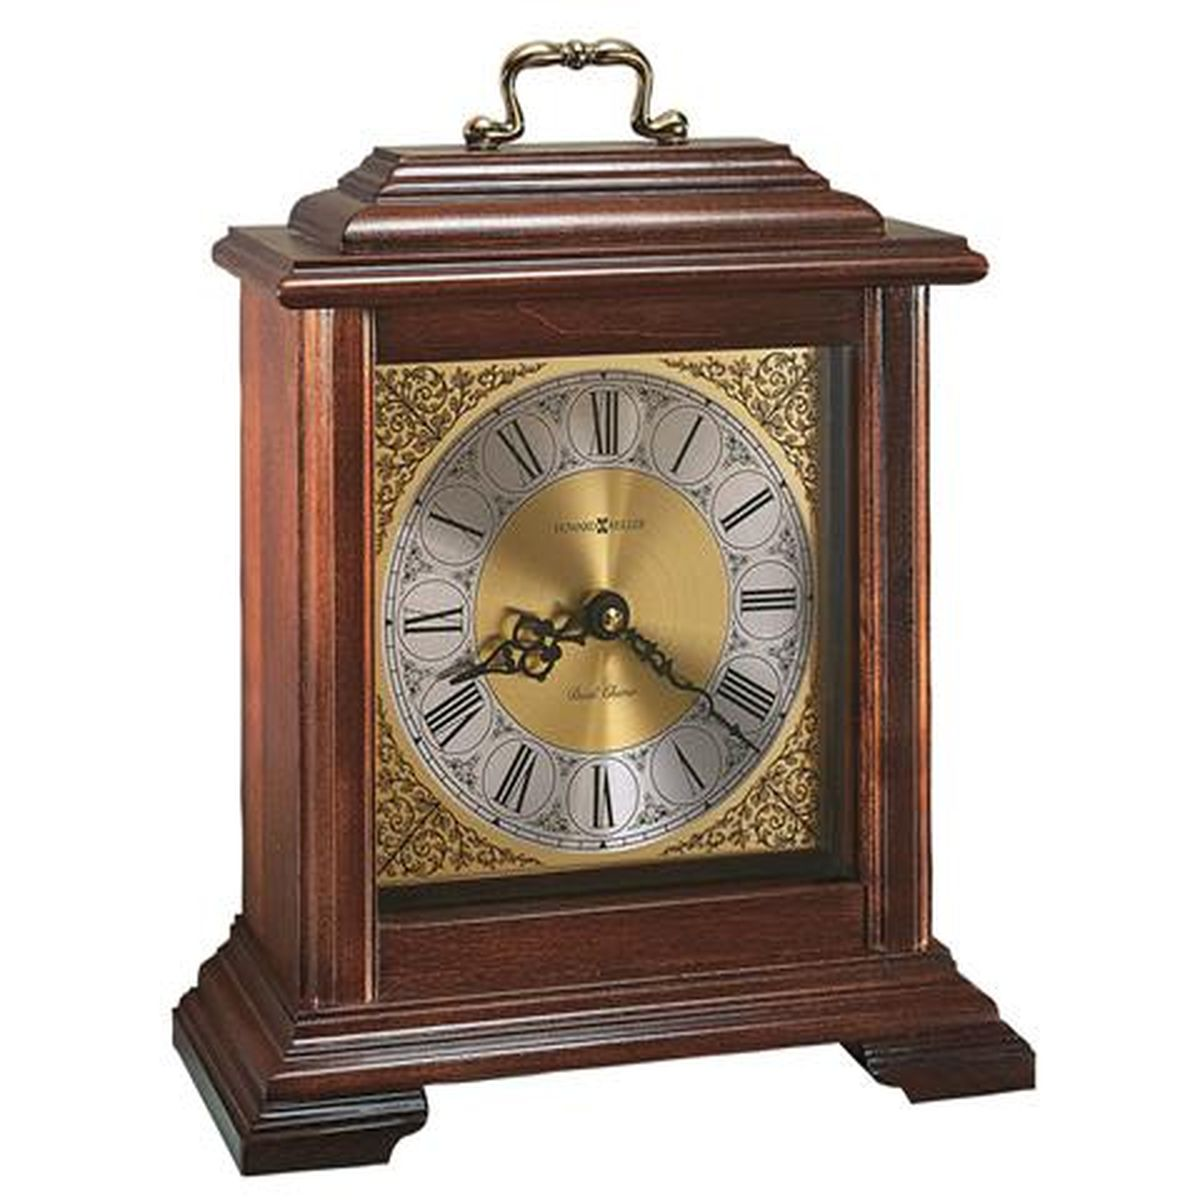 Finding A Reputable Howard Miller Clock Repair, Service Center, and Dealer in Massachusetts